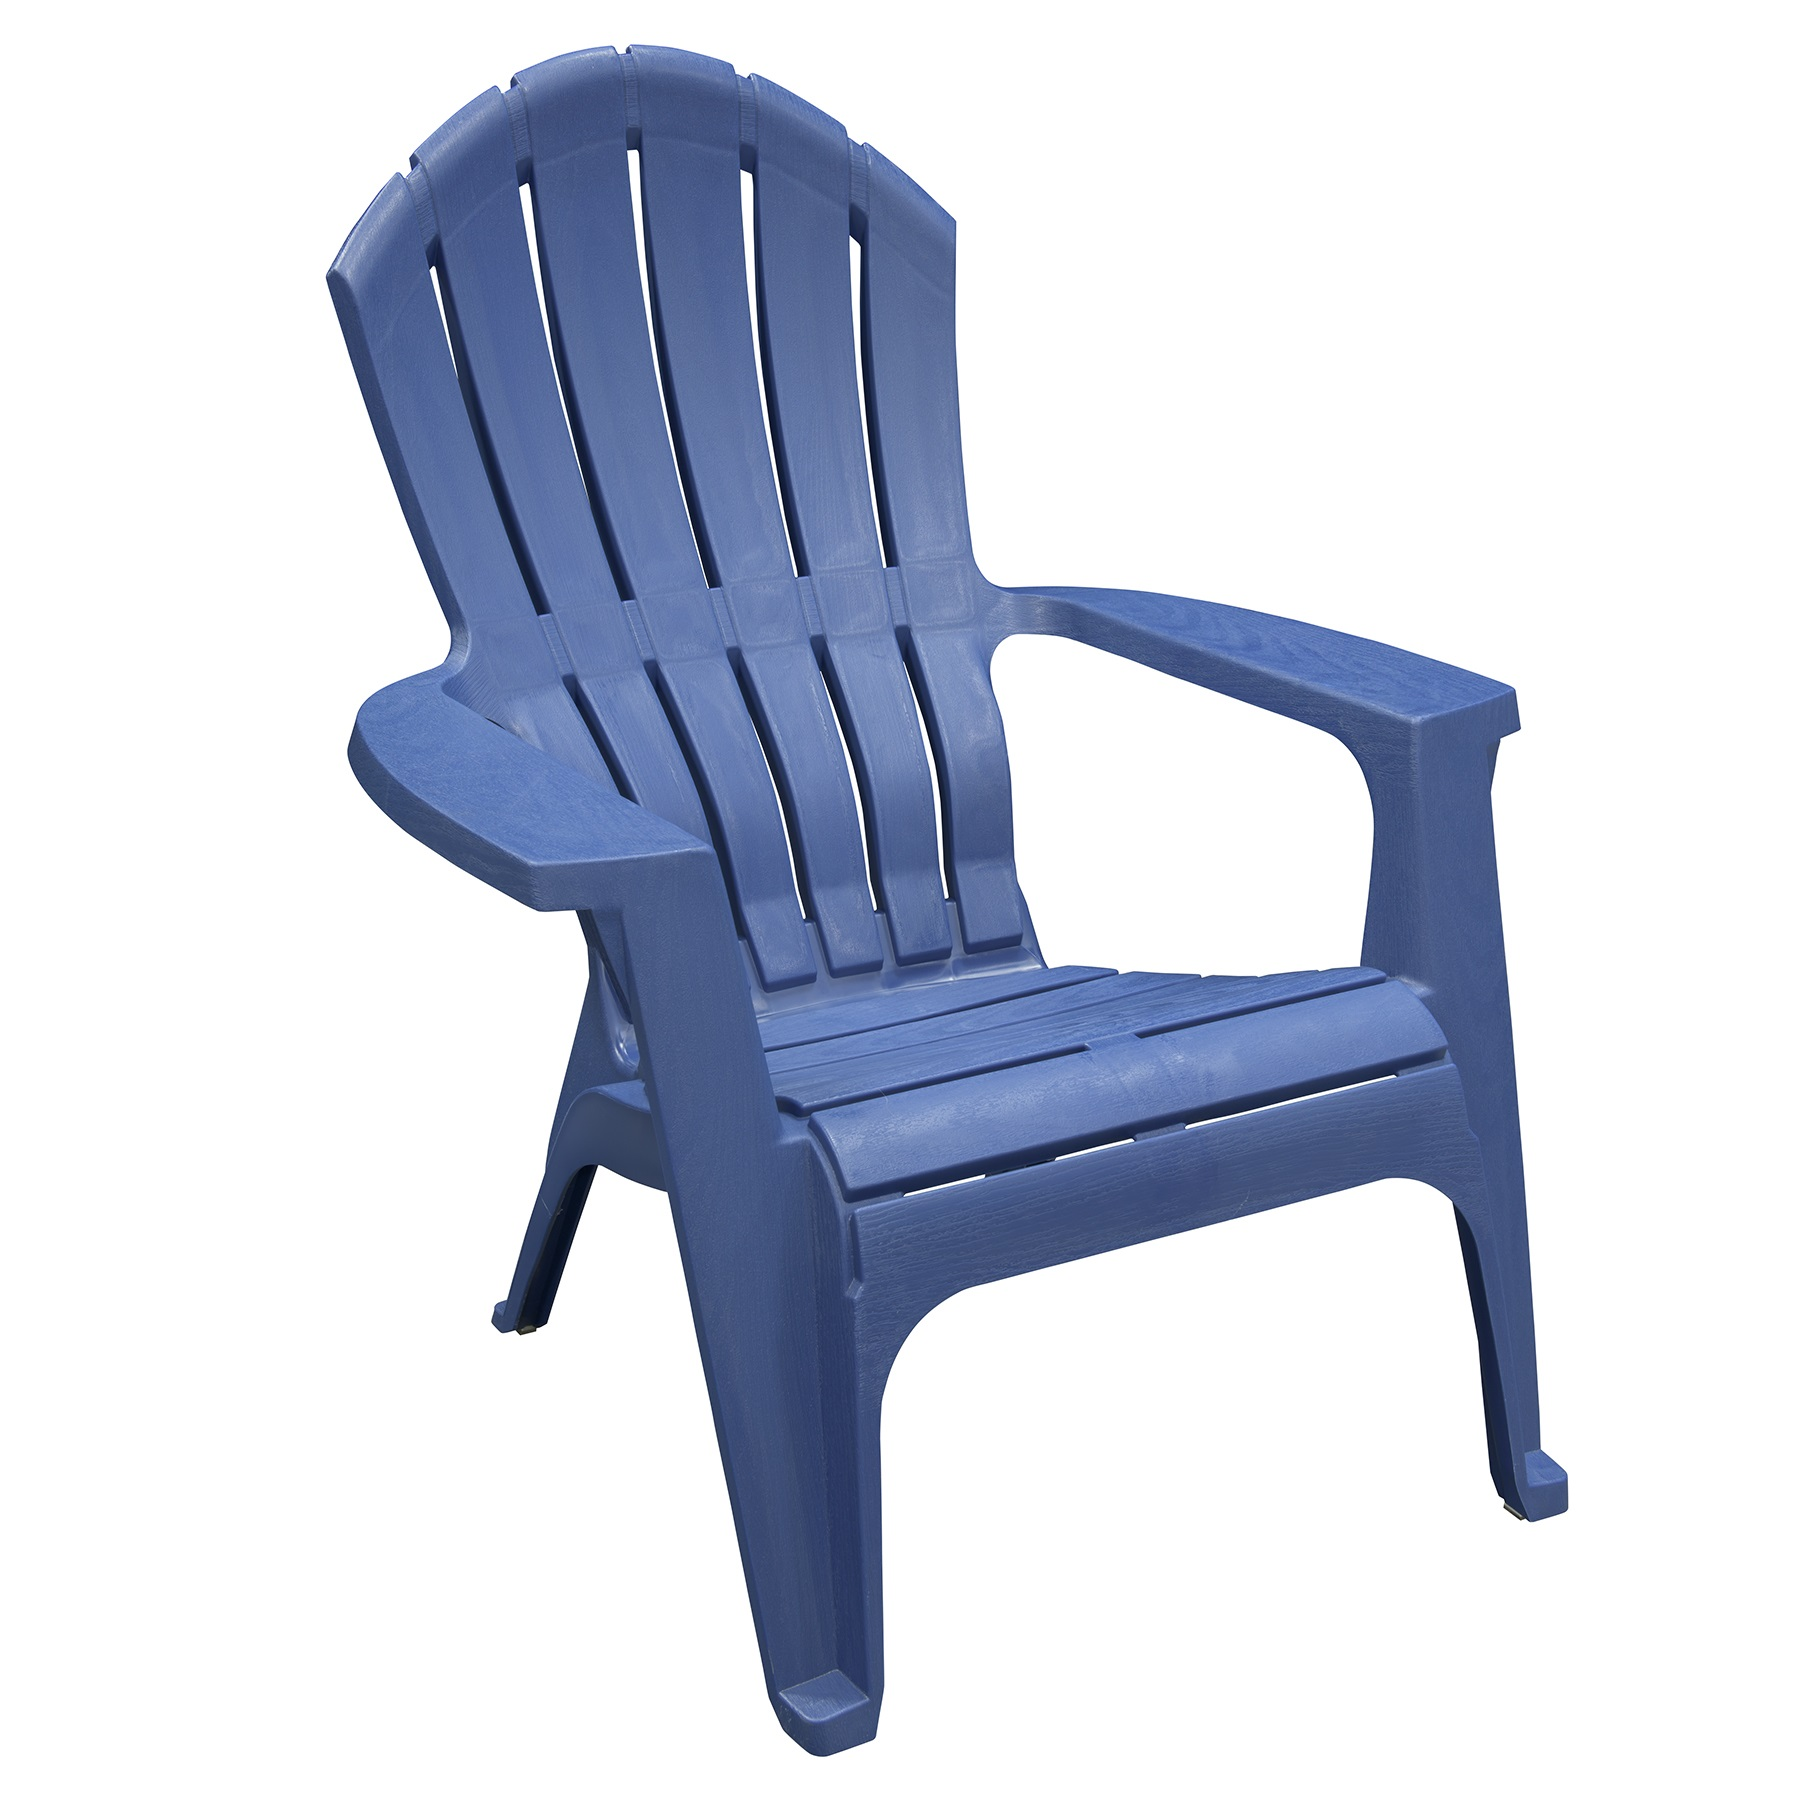 adams manufacturing adirondack chairs banquet chair trolley realcomfort patriotic blue walmart com